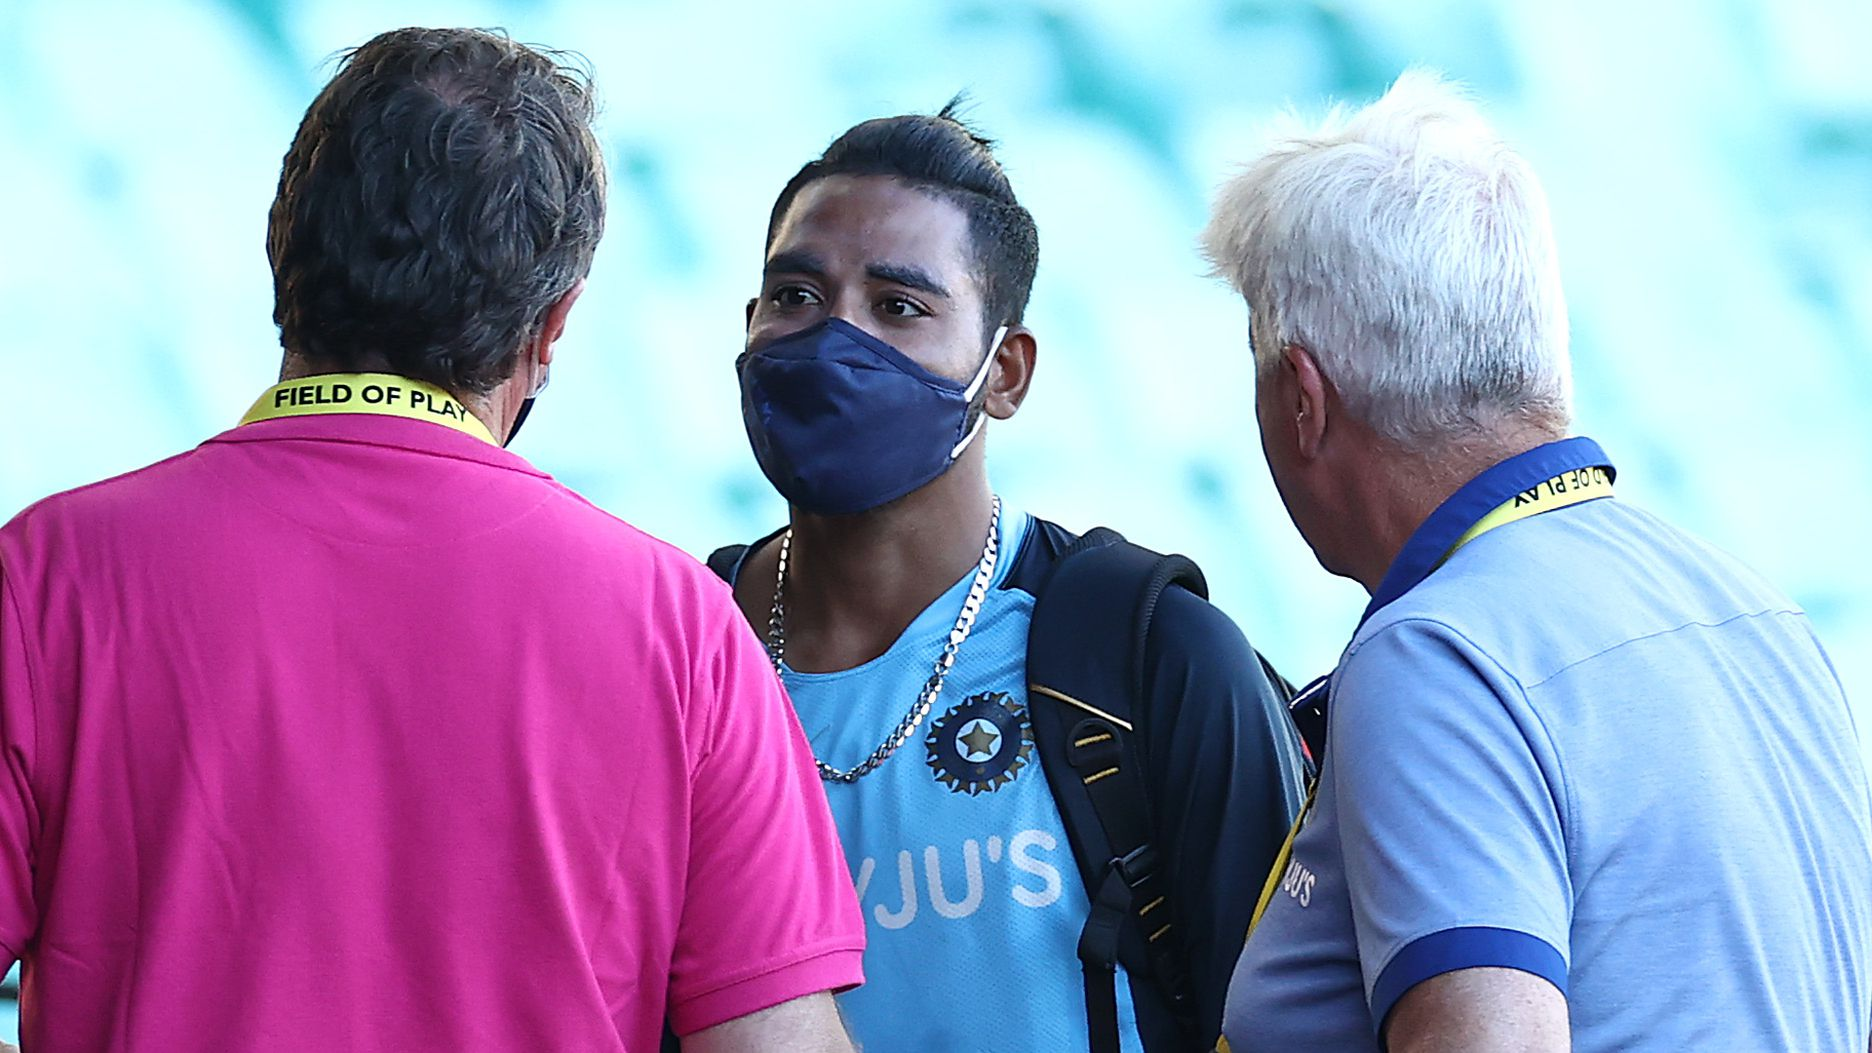 SCG Test rocked by allegations that India stars were racially abused by spectators